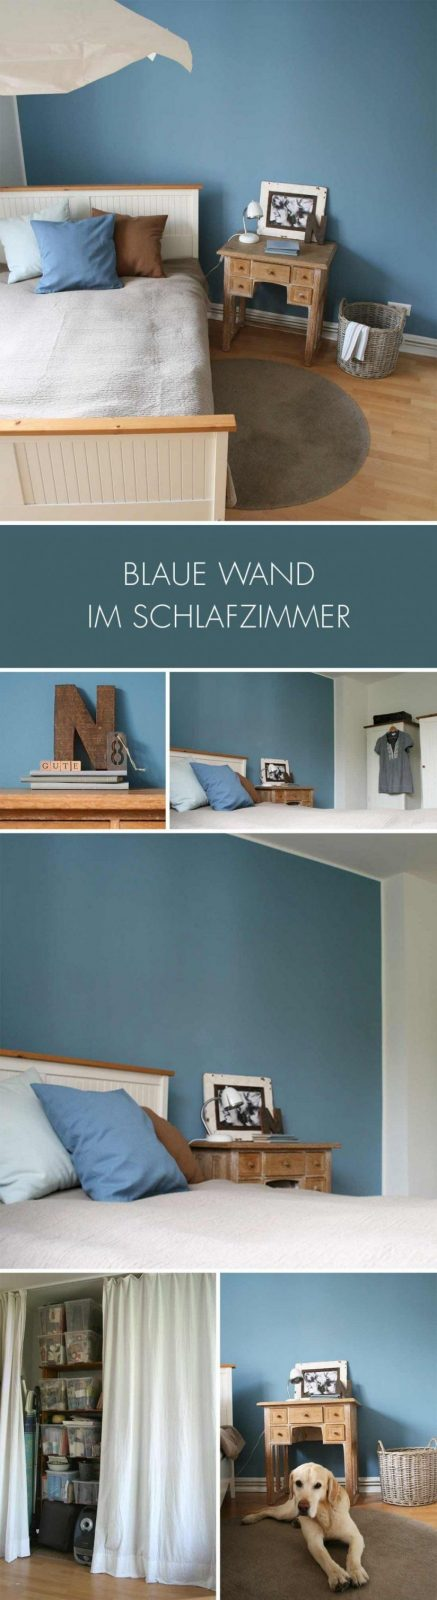 wandfarbe blau grau mischen elegant wandfarbe mischen beige von wandfarbe blau grau mischen bild. Black Bedroom Furniture Sets. Home Design Ideas